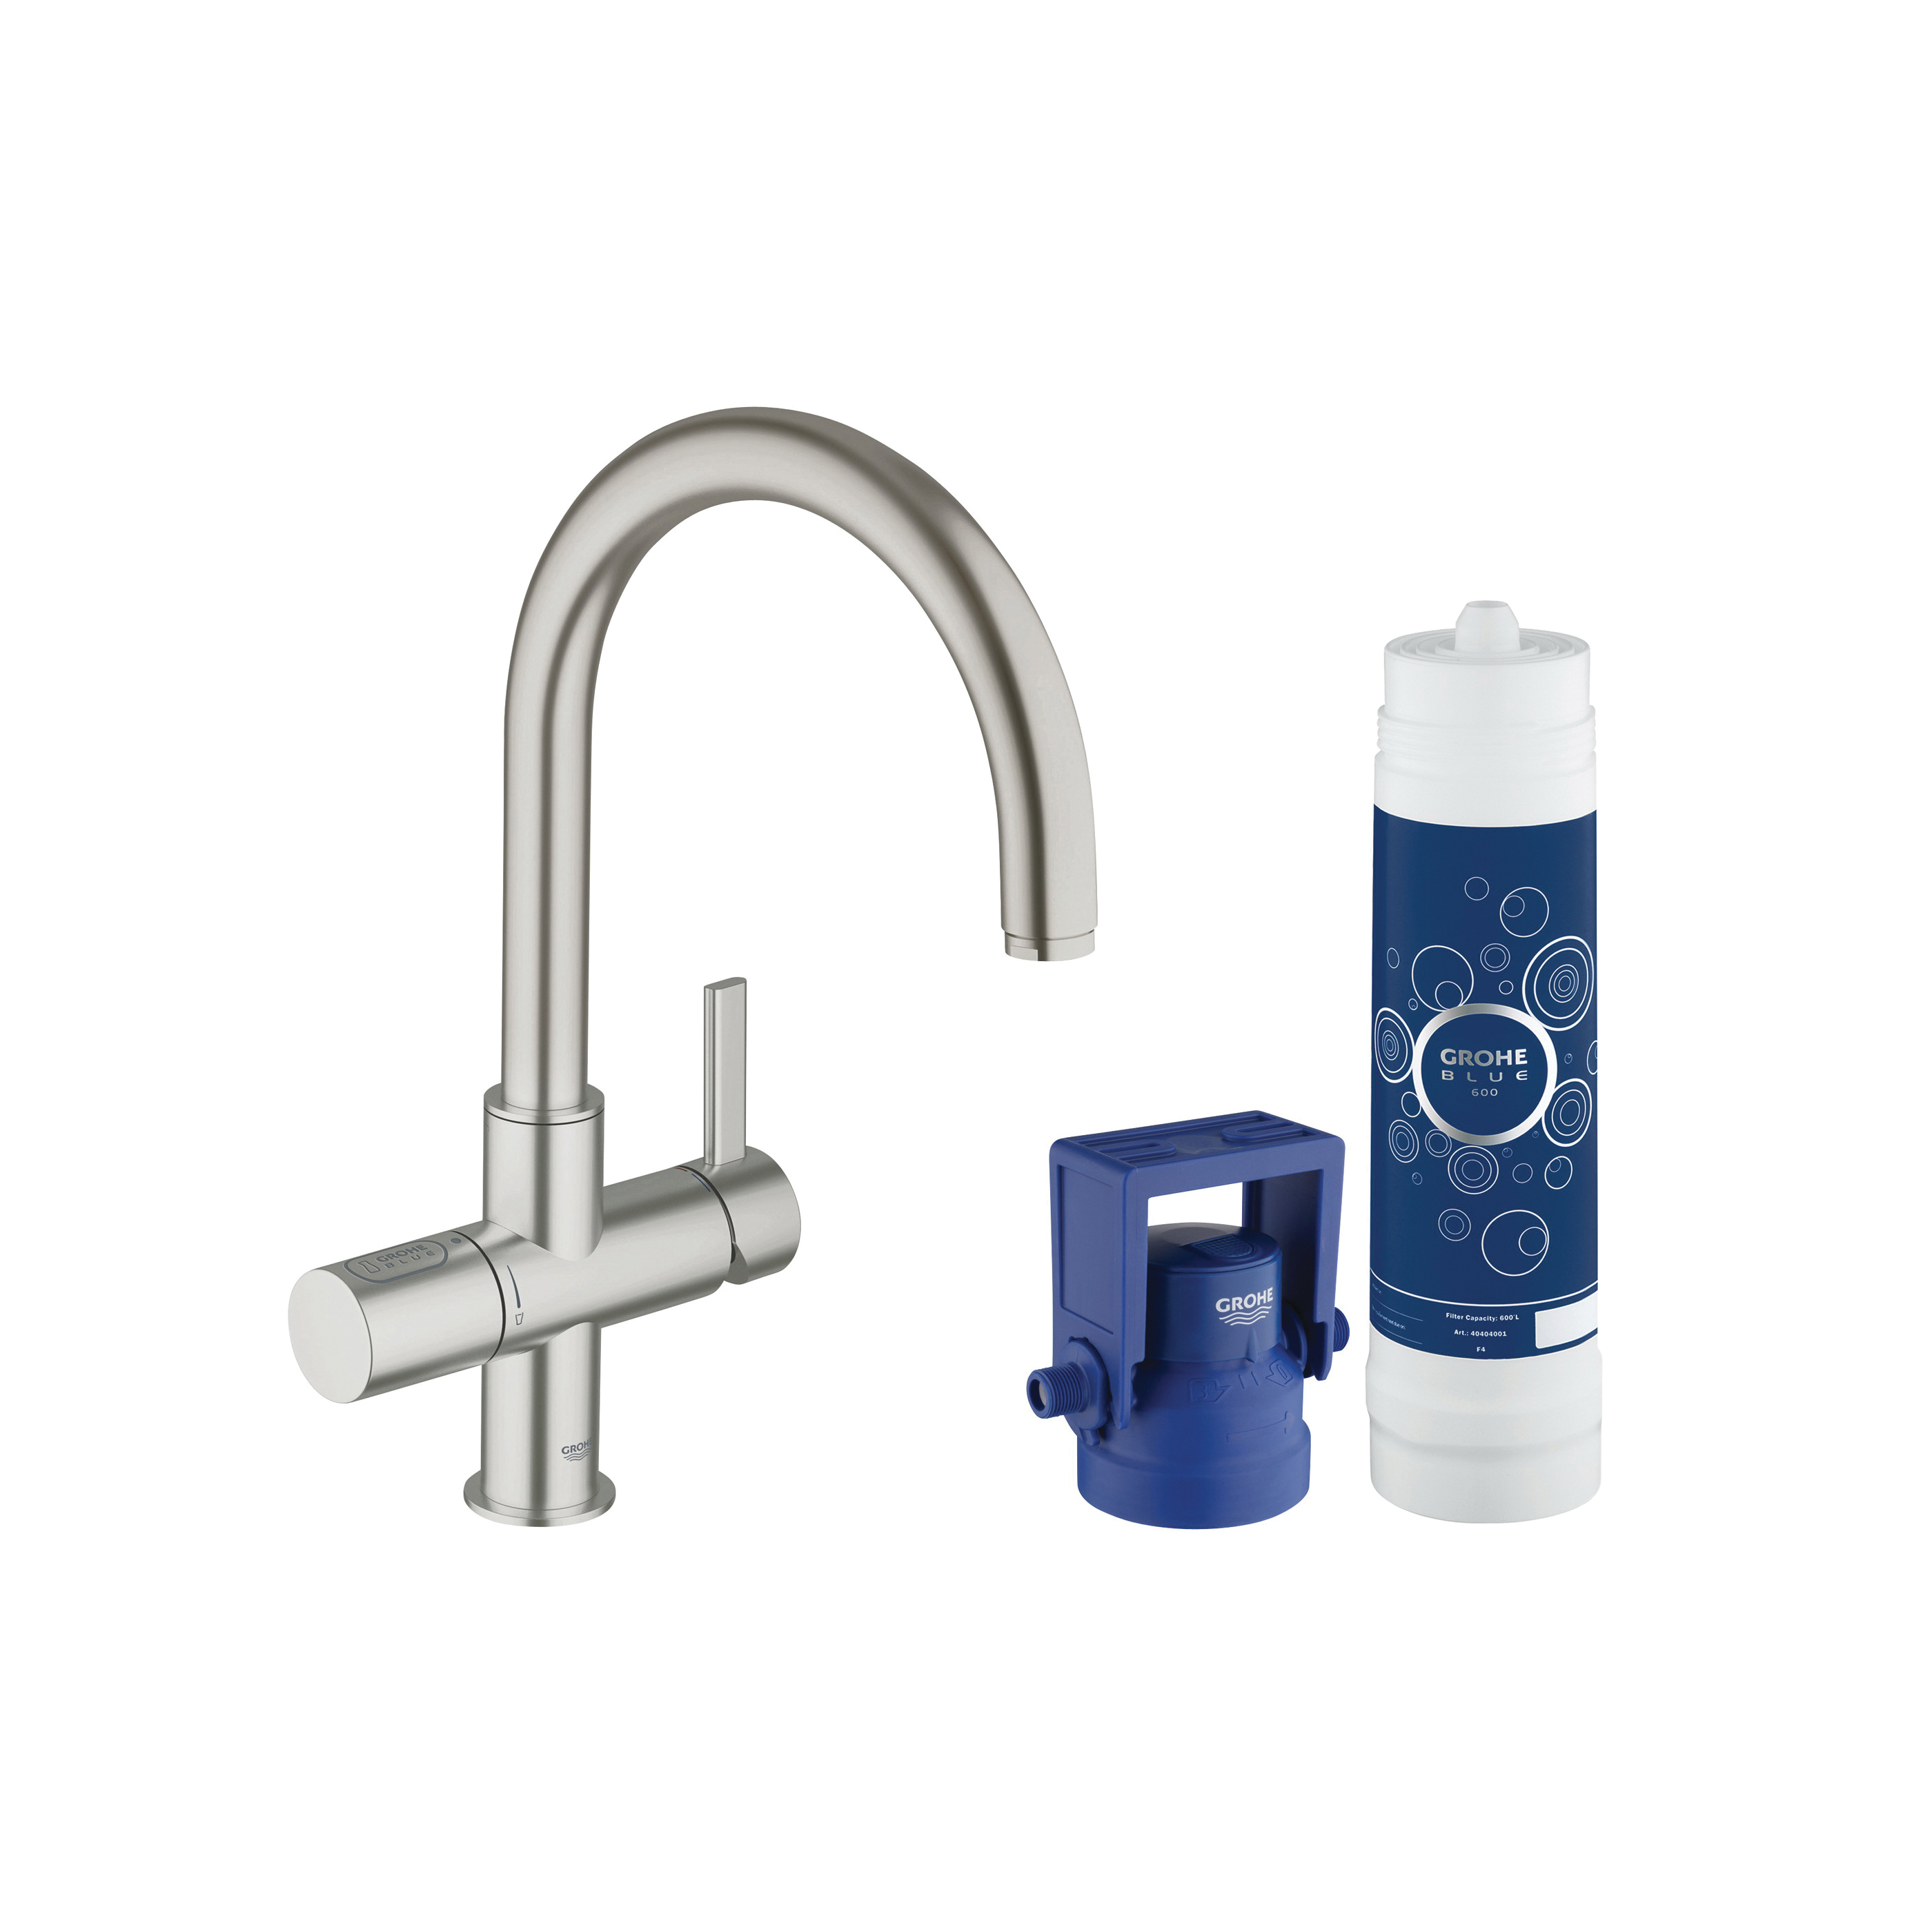 GROHE 31312DC1 GROHE Blue Pure Faucet and Water System, 1.75 gpm, 1 Handle, SuperSteel, Import, Residential